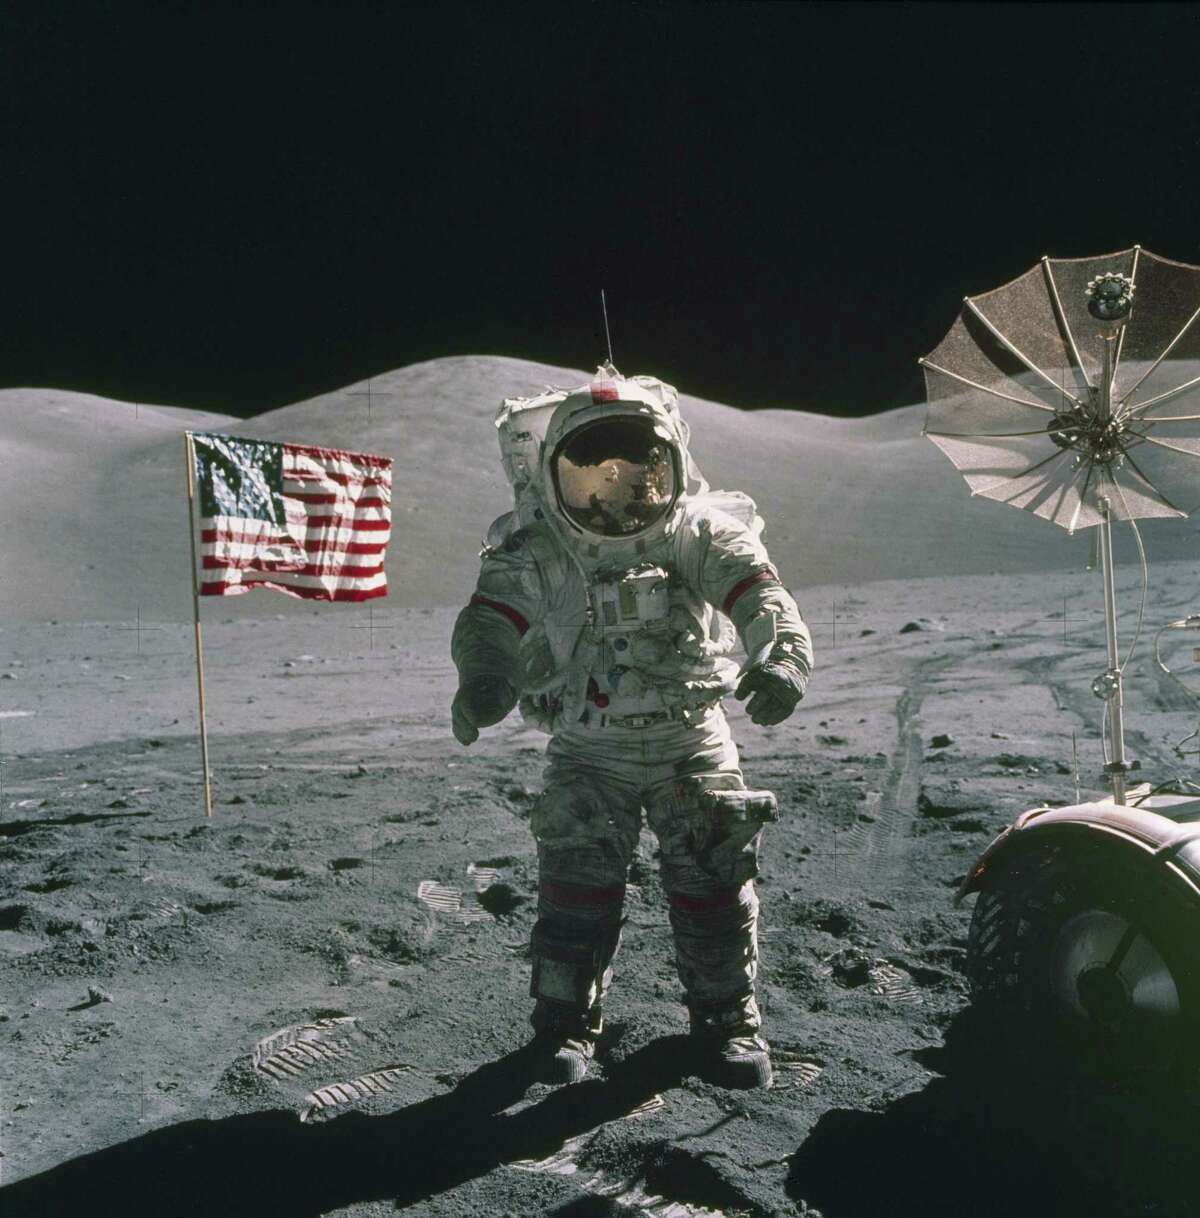 In this Dec. 12, 1972, photo provided by NASA, Apollo 17 commander Eugene Cernan stands on the moon. (NASA via AP)